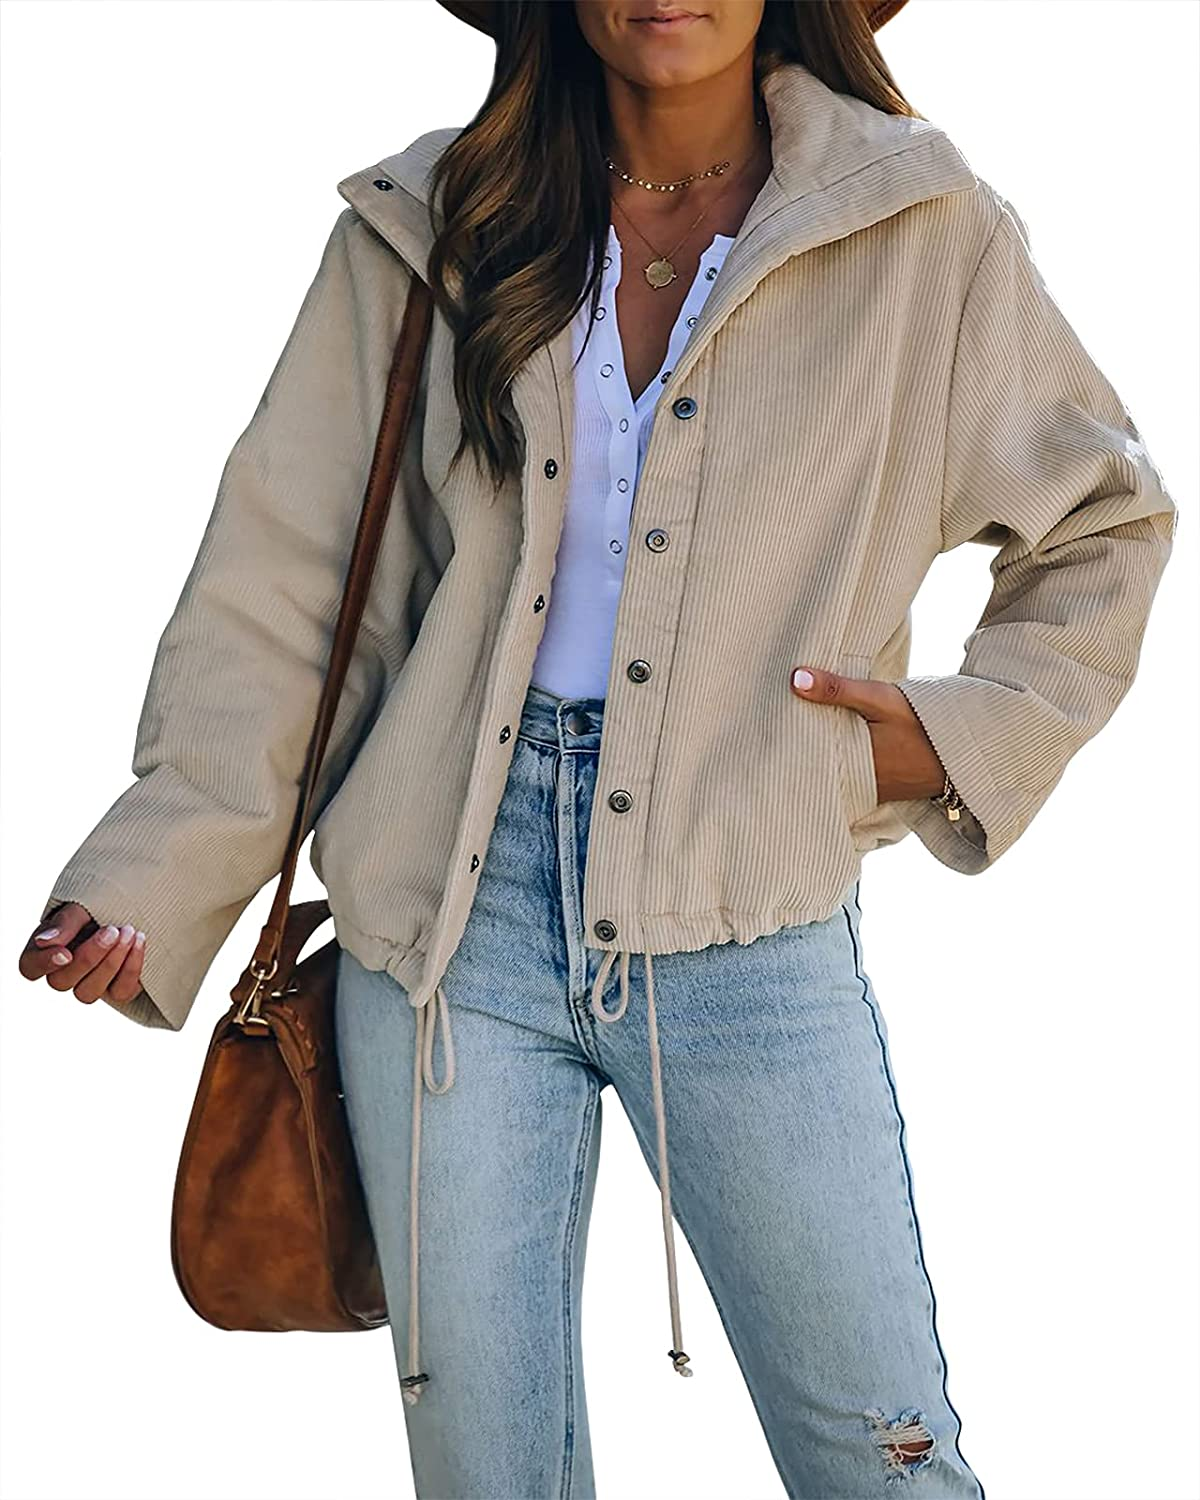 Ermonn Women's Corduroy Jacket Excellent Long Sleeve Fall Button Inventory cleanup selling sale Snap